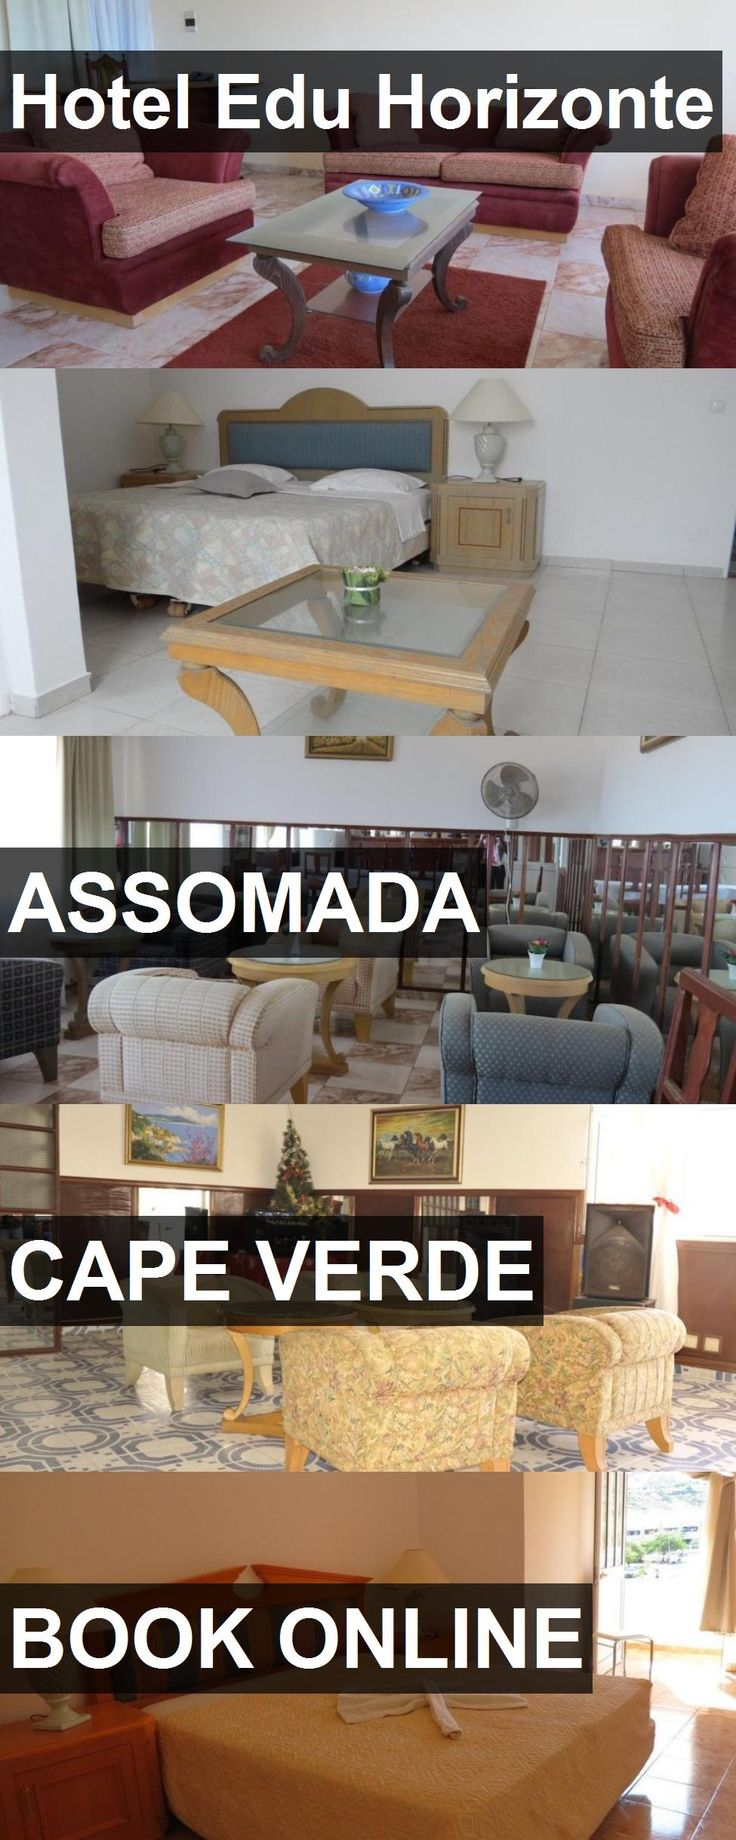 Hotel Edu Horizonte in Assomada, Cape Verde. For more information, photos, reviews and best prices please follow the link. #CapeVerde #Assomada #travel #vacation #hotel